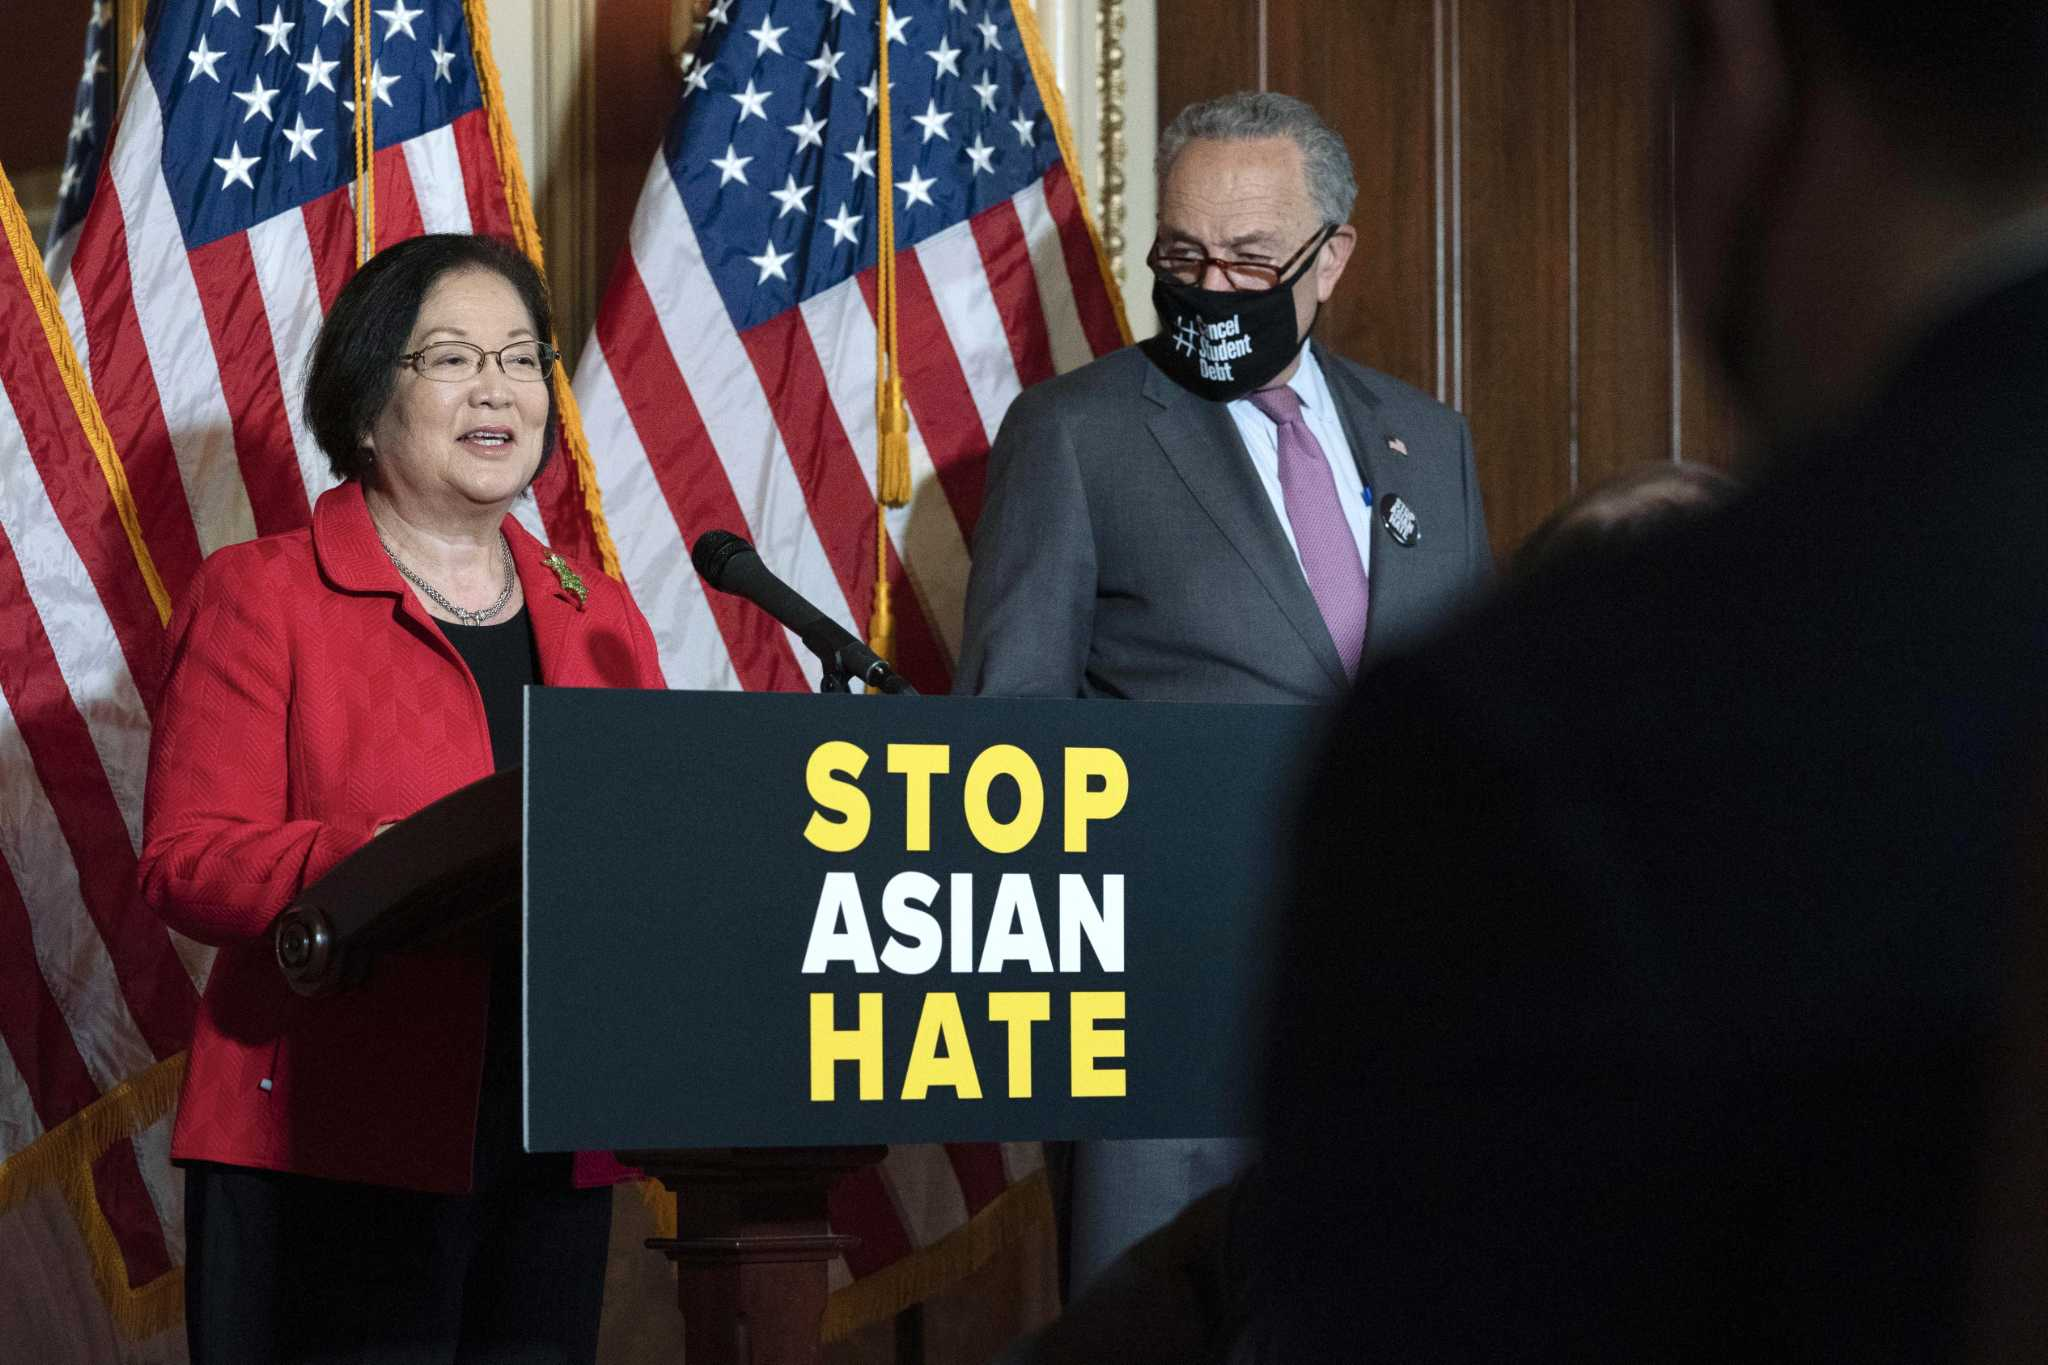 www.thehour.com: Senate passes bill to reduce hate crimes against Asian Americans